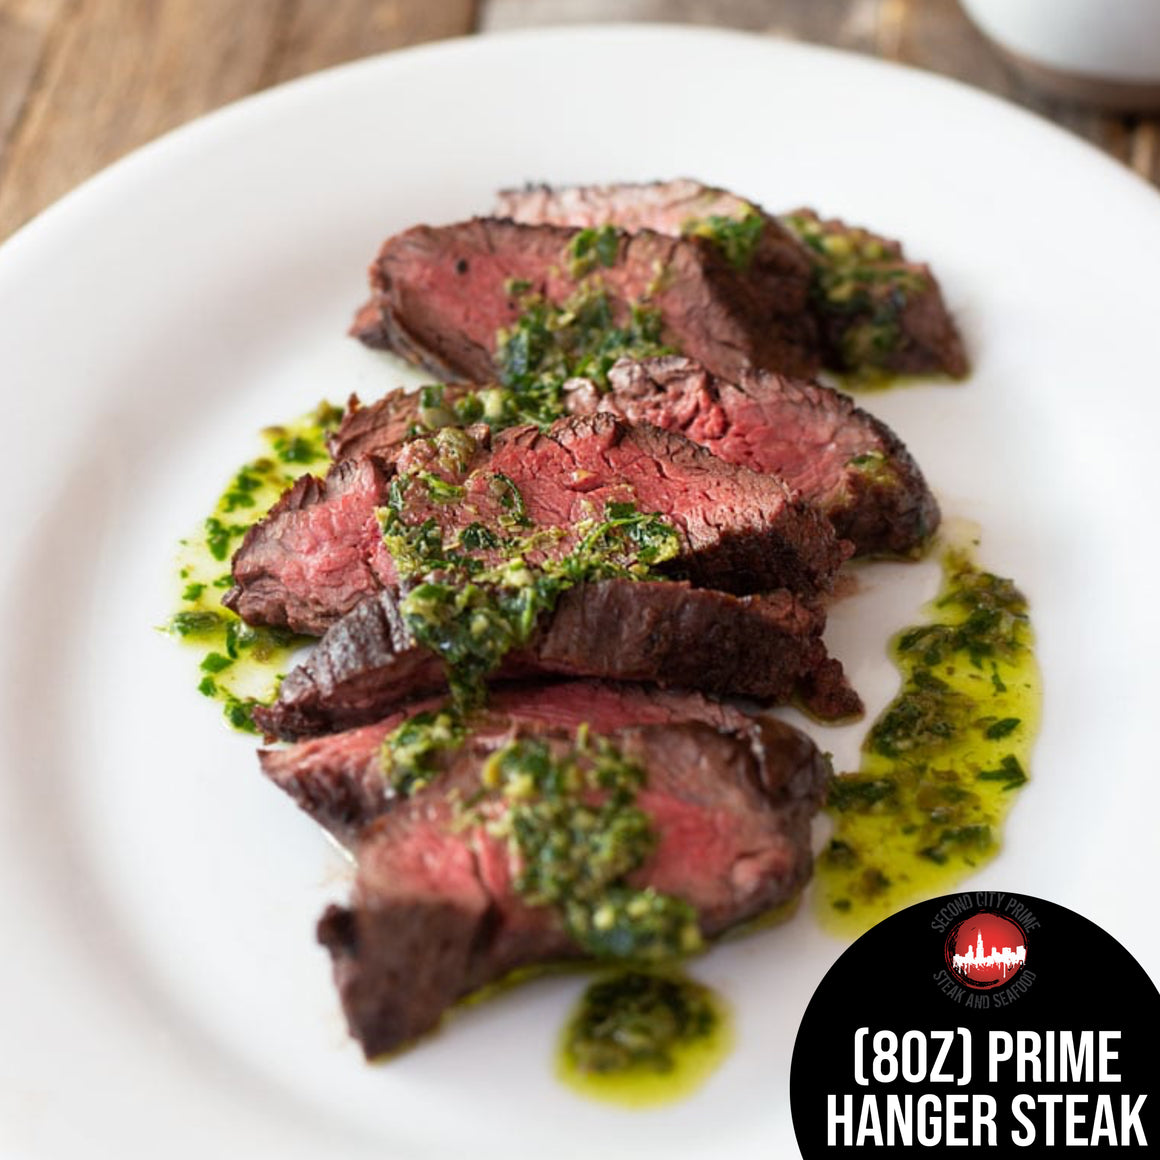 8oz Prime Hanger Steak - Second City Prime